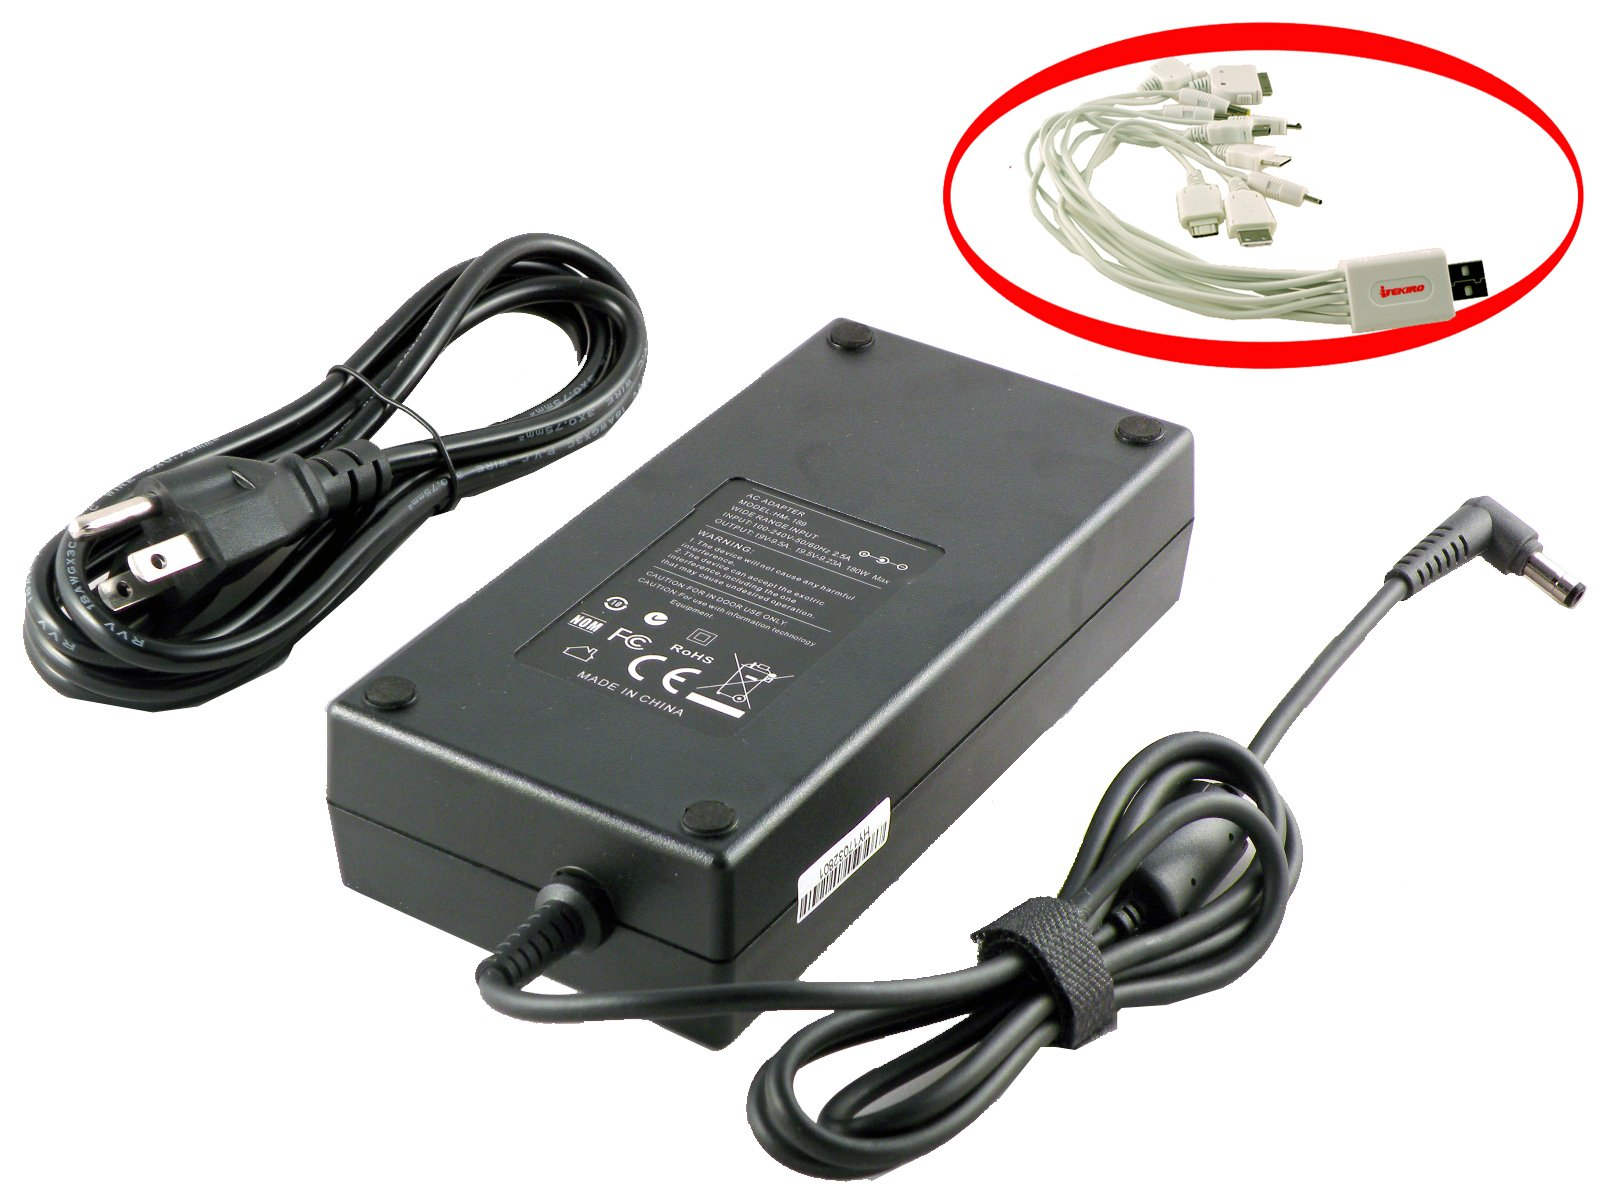 iTEKIRO 180W Laptop Charger AC Adapter for Asus G75VX, G75VX-BHI7N09, G75VX-BHI7N11, G75VX-DH72-CA, G75VX-DS72, G75VX-DS73-3D, G75VX-TS72, G751JM, G751JM-BHI7T25 + 10-in-1 USB Charging Cable